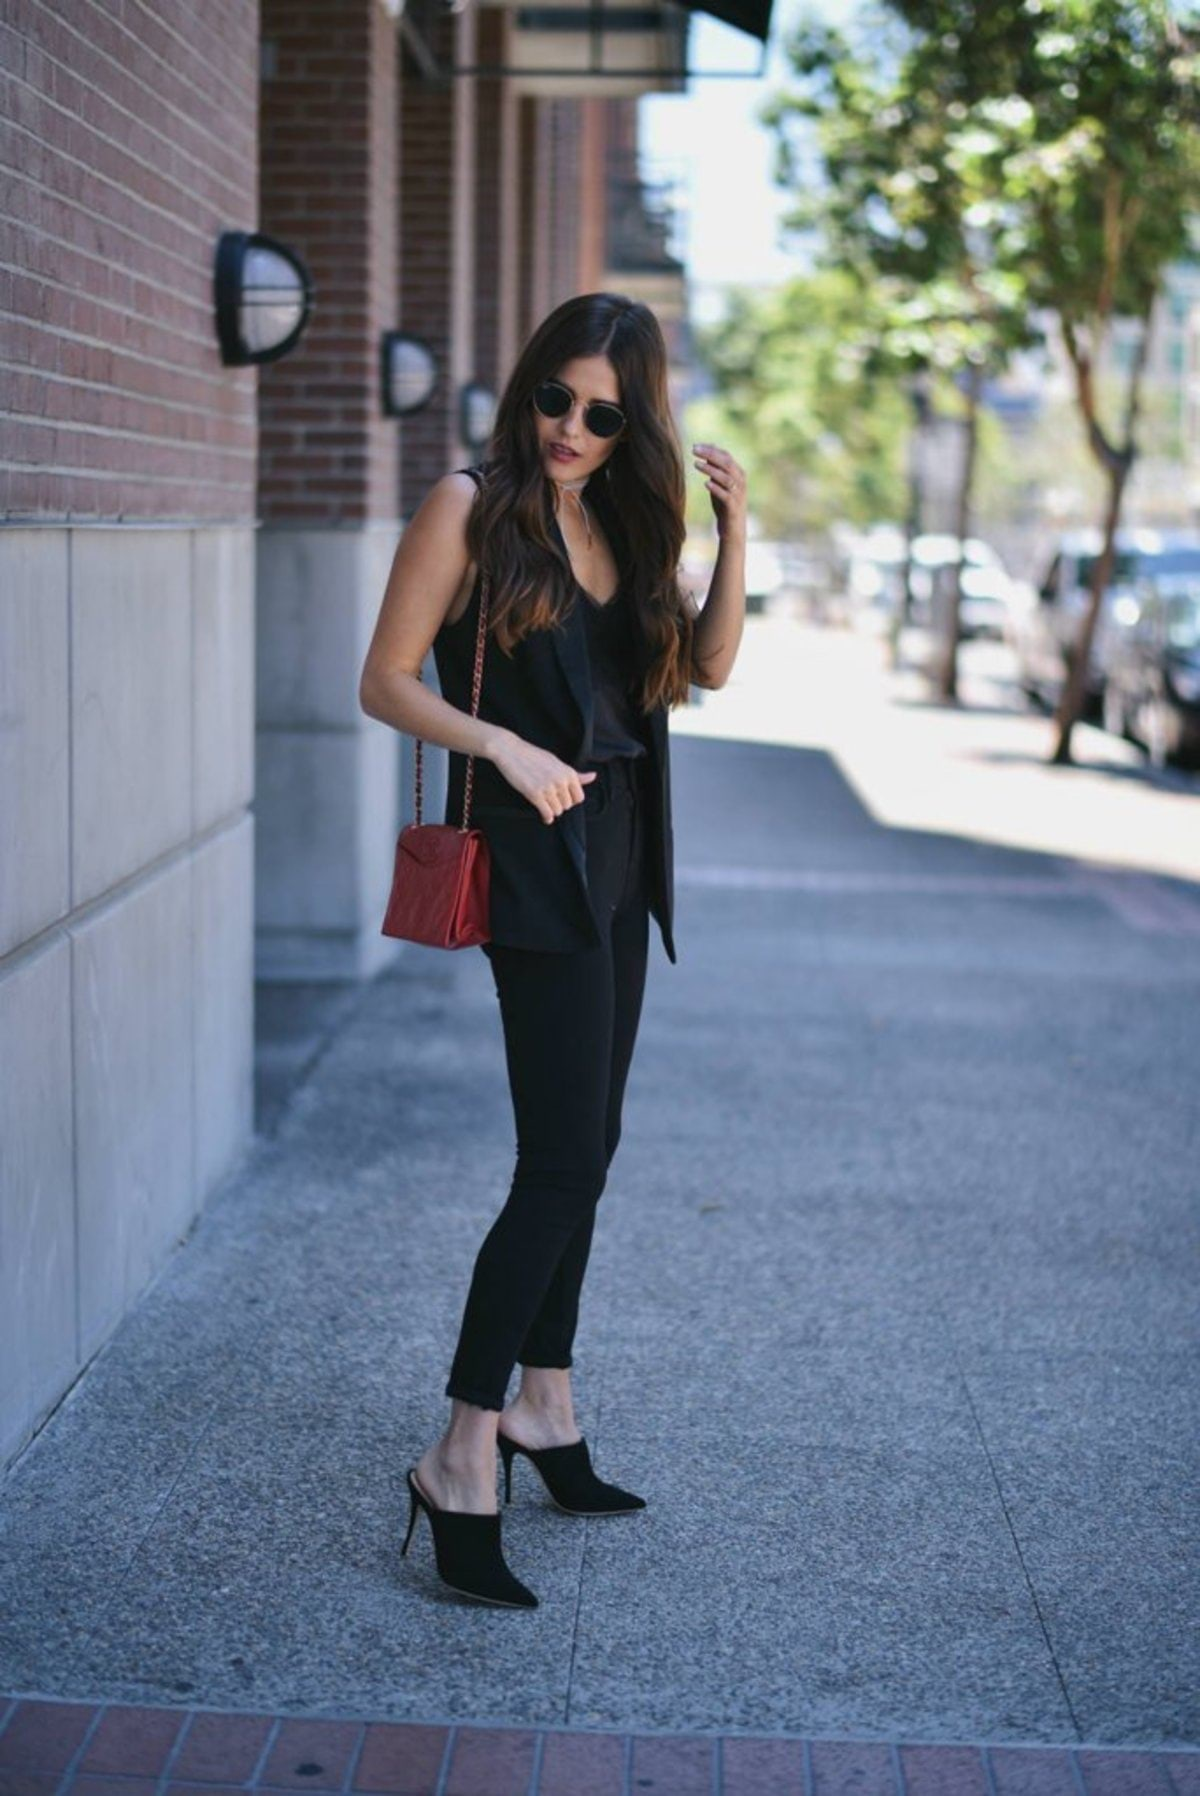 Mimic-pantsuit-pairing-slim-trousers-jeans-matching-vest-add-bright-bag-add-interest